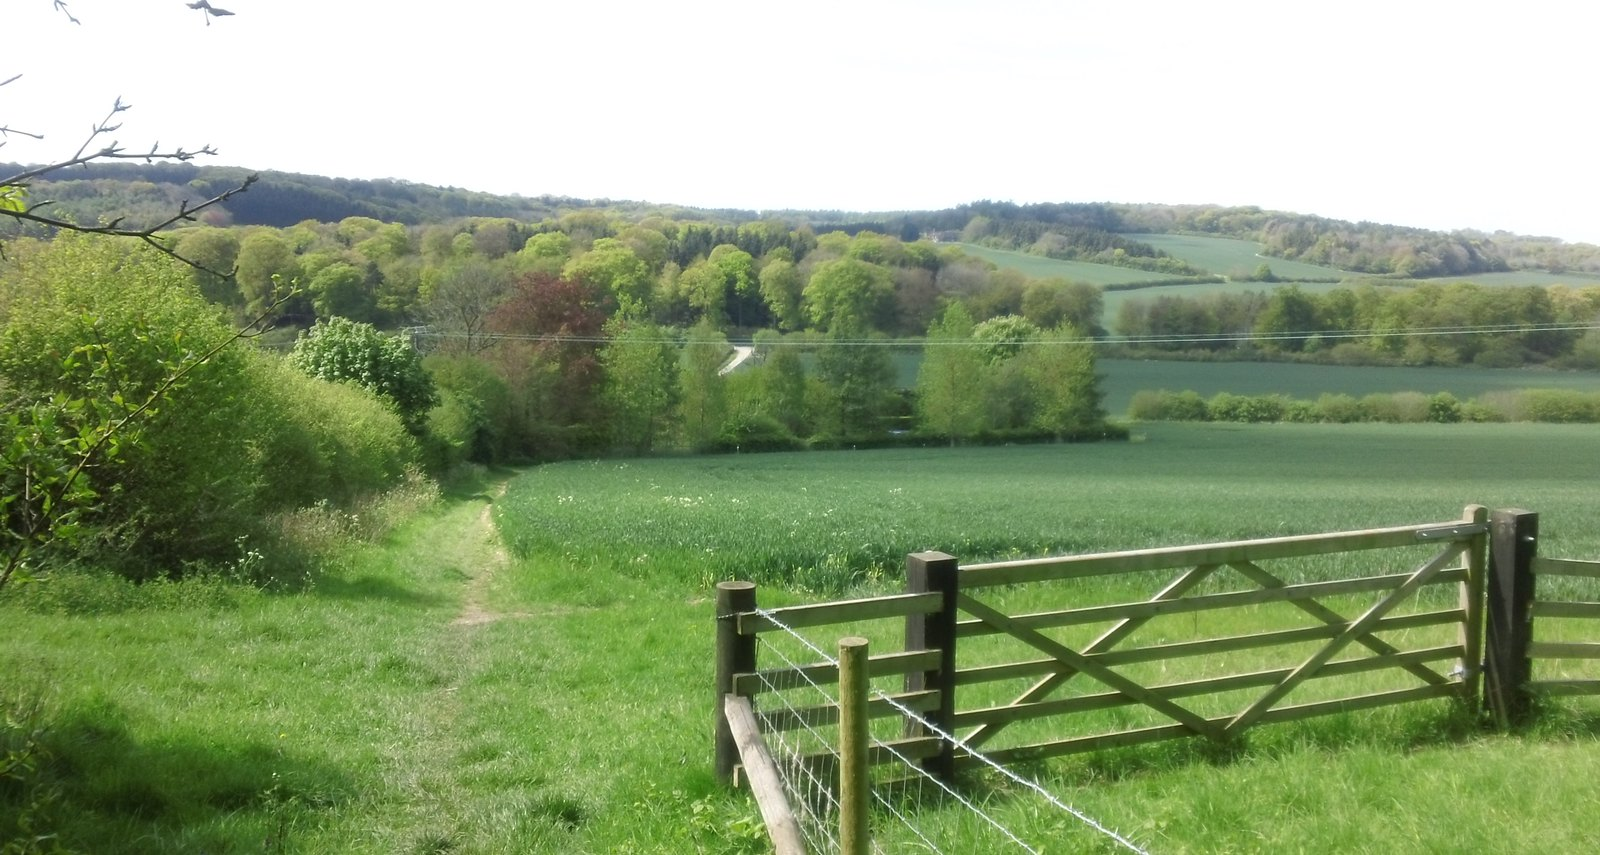 Vista Descent towards Dirtywood Farm